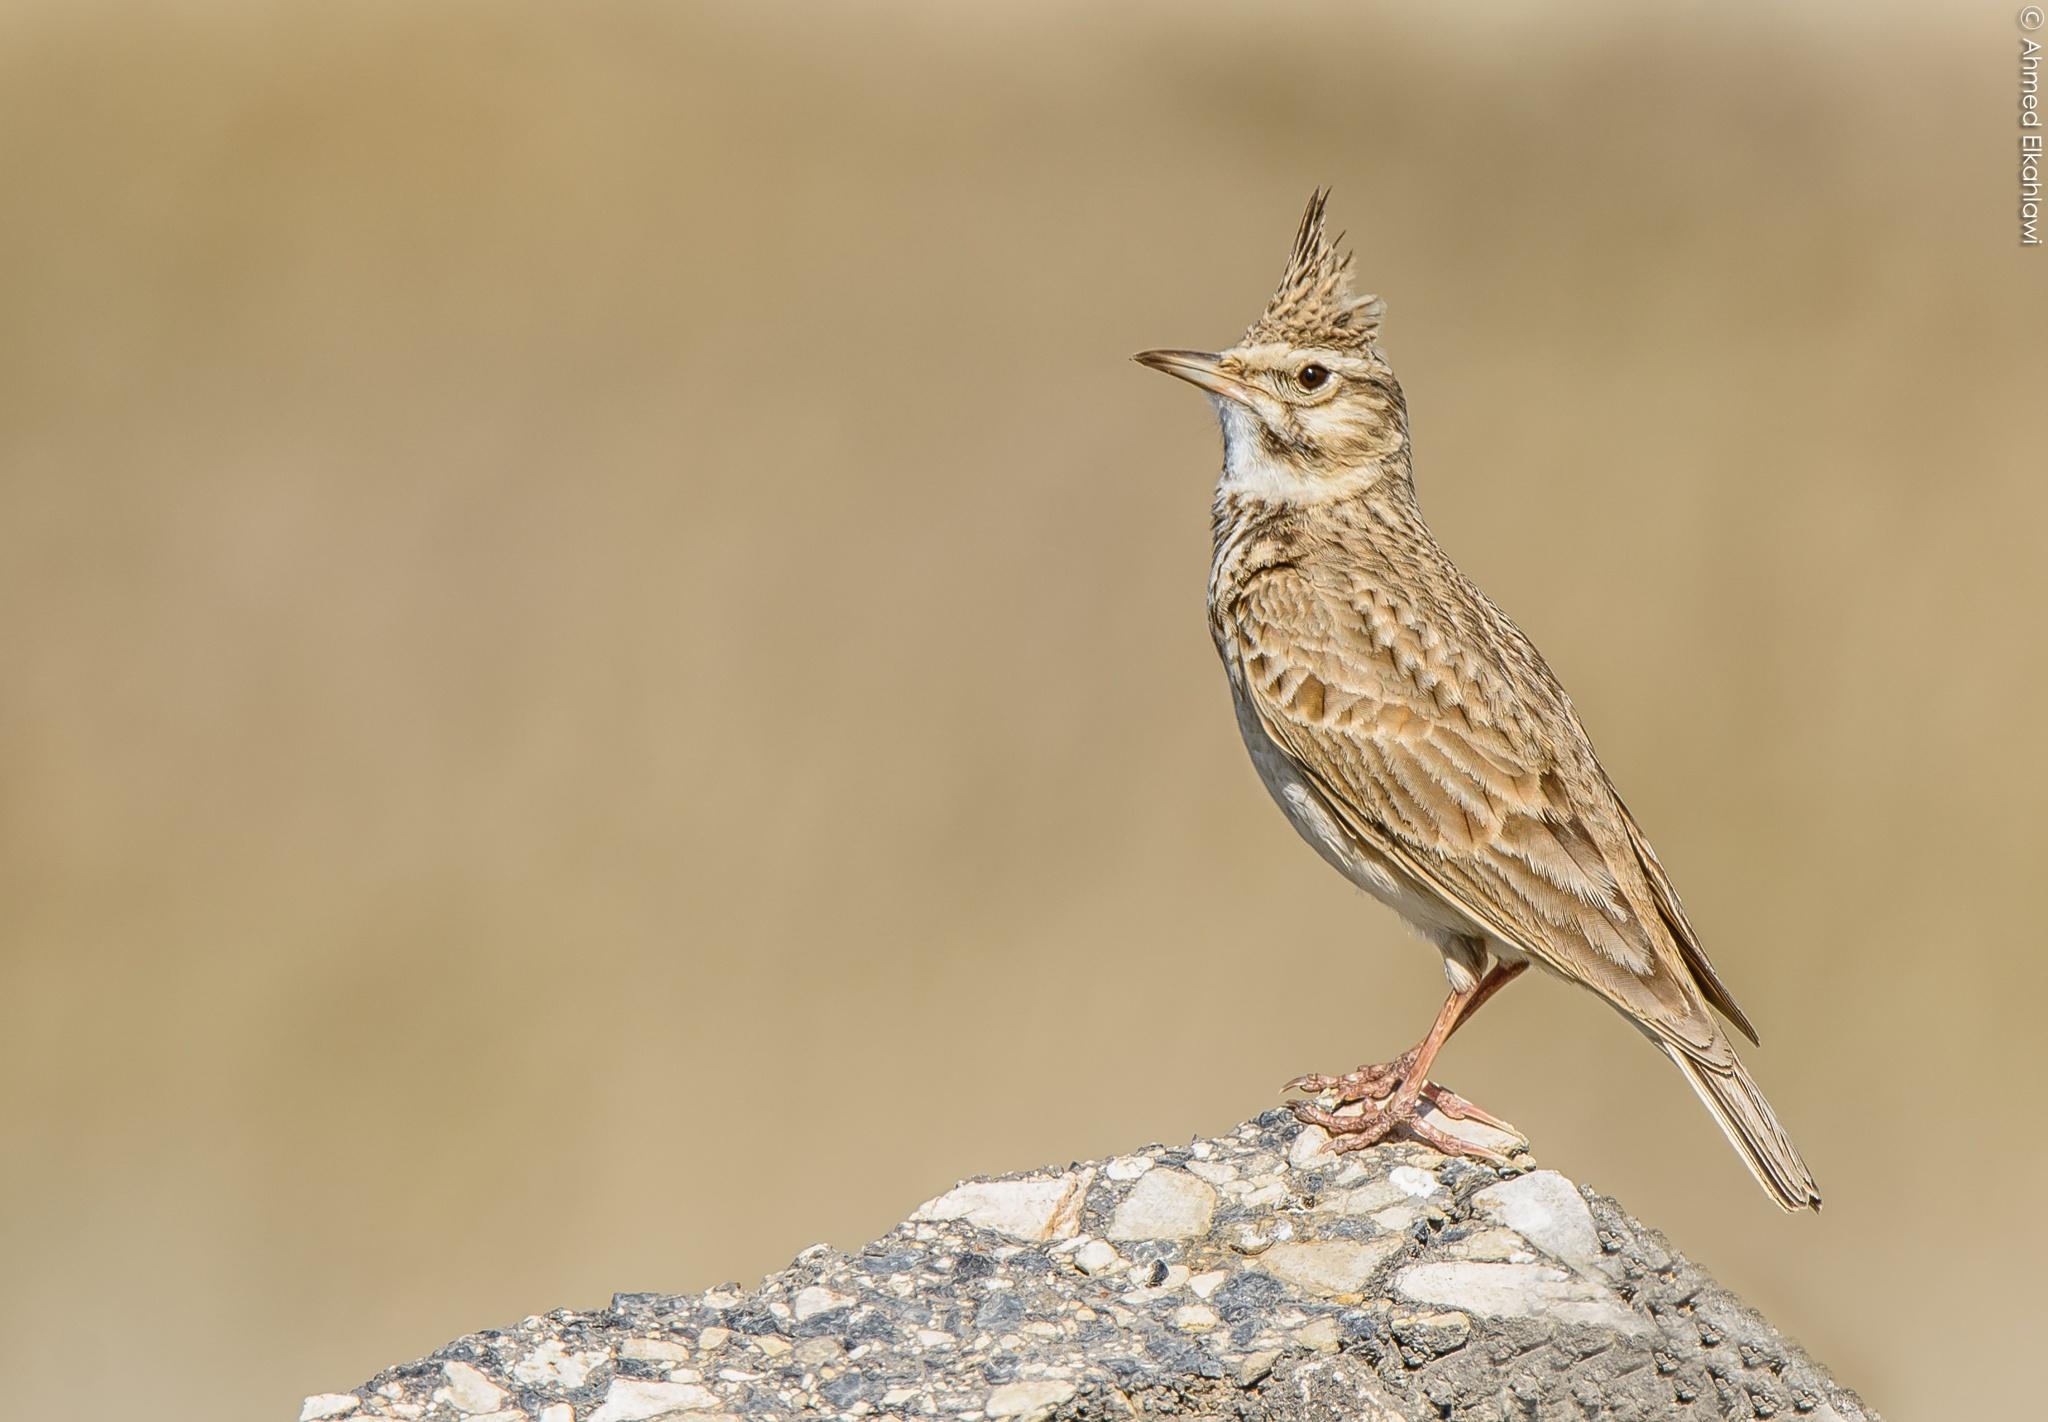 Crested Lark by Ahmed Elkahlawi